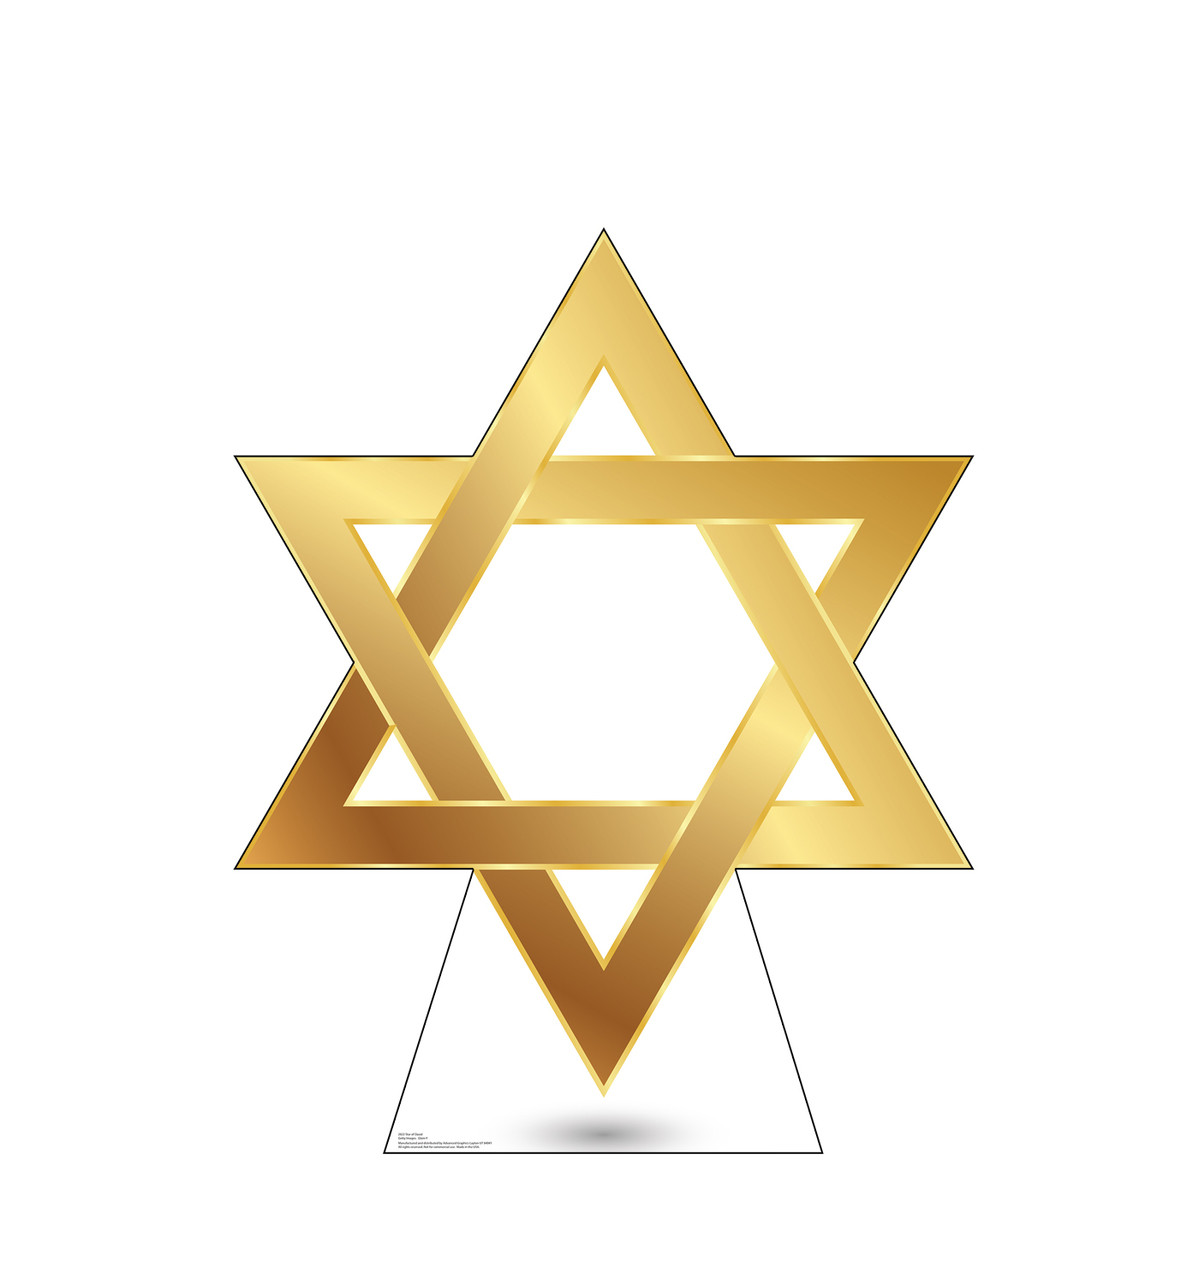 Life-size cardboard standee of Star of David.